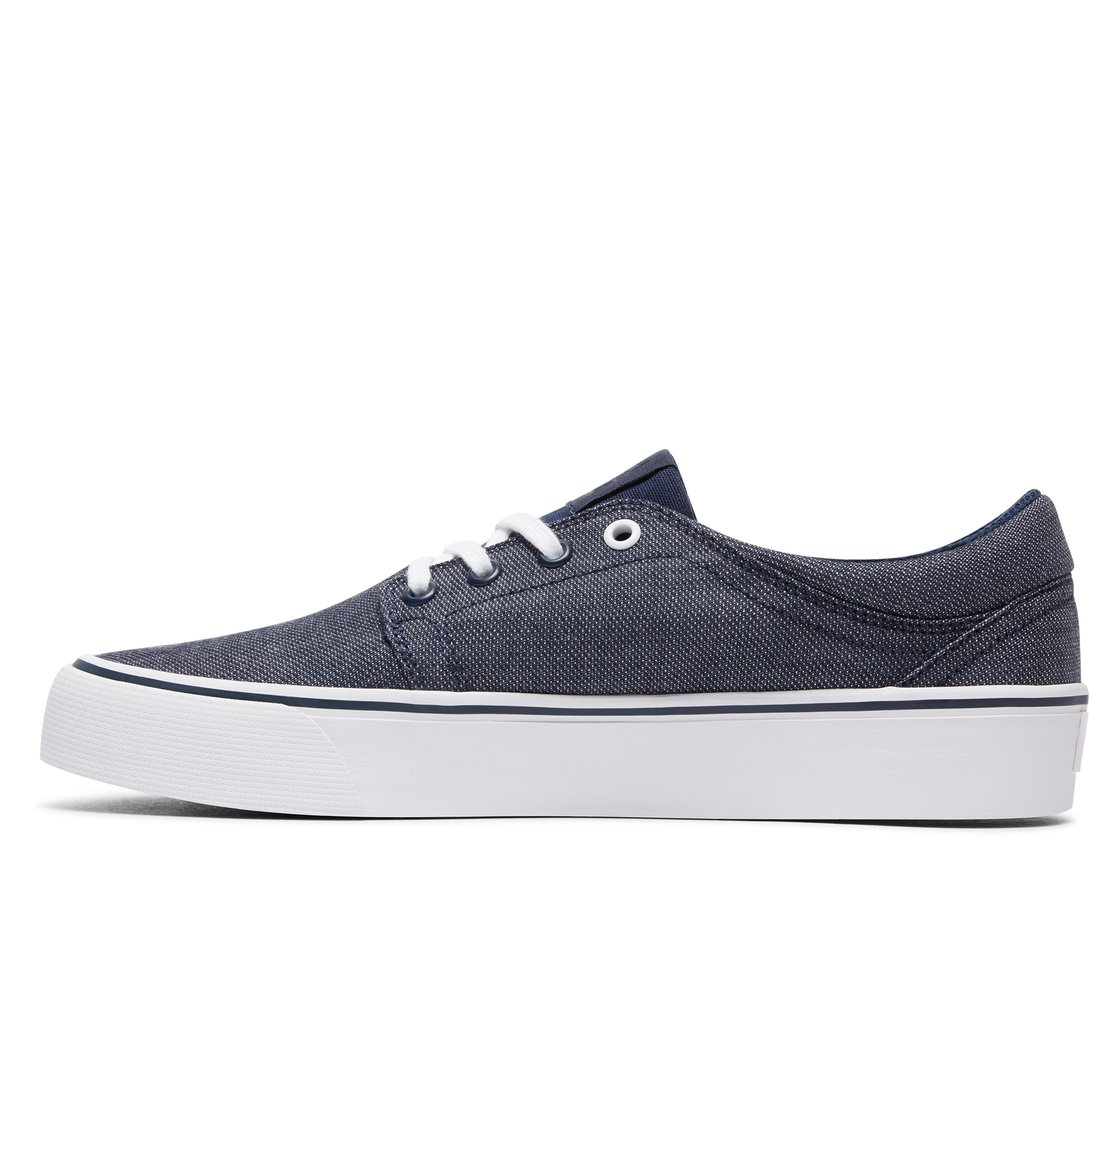 Trase TX SE - Baskets - Bleu - DC Shoes Izr3M